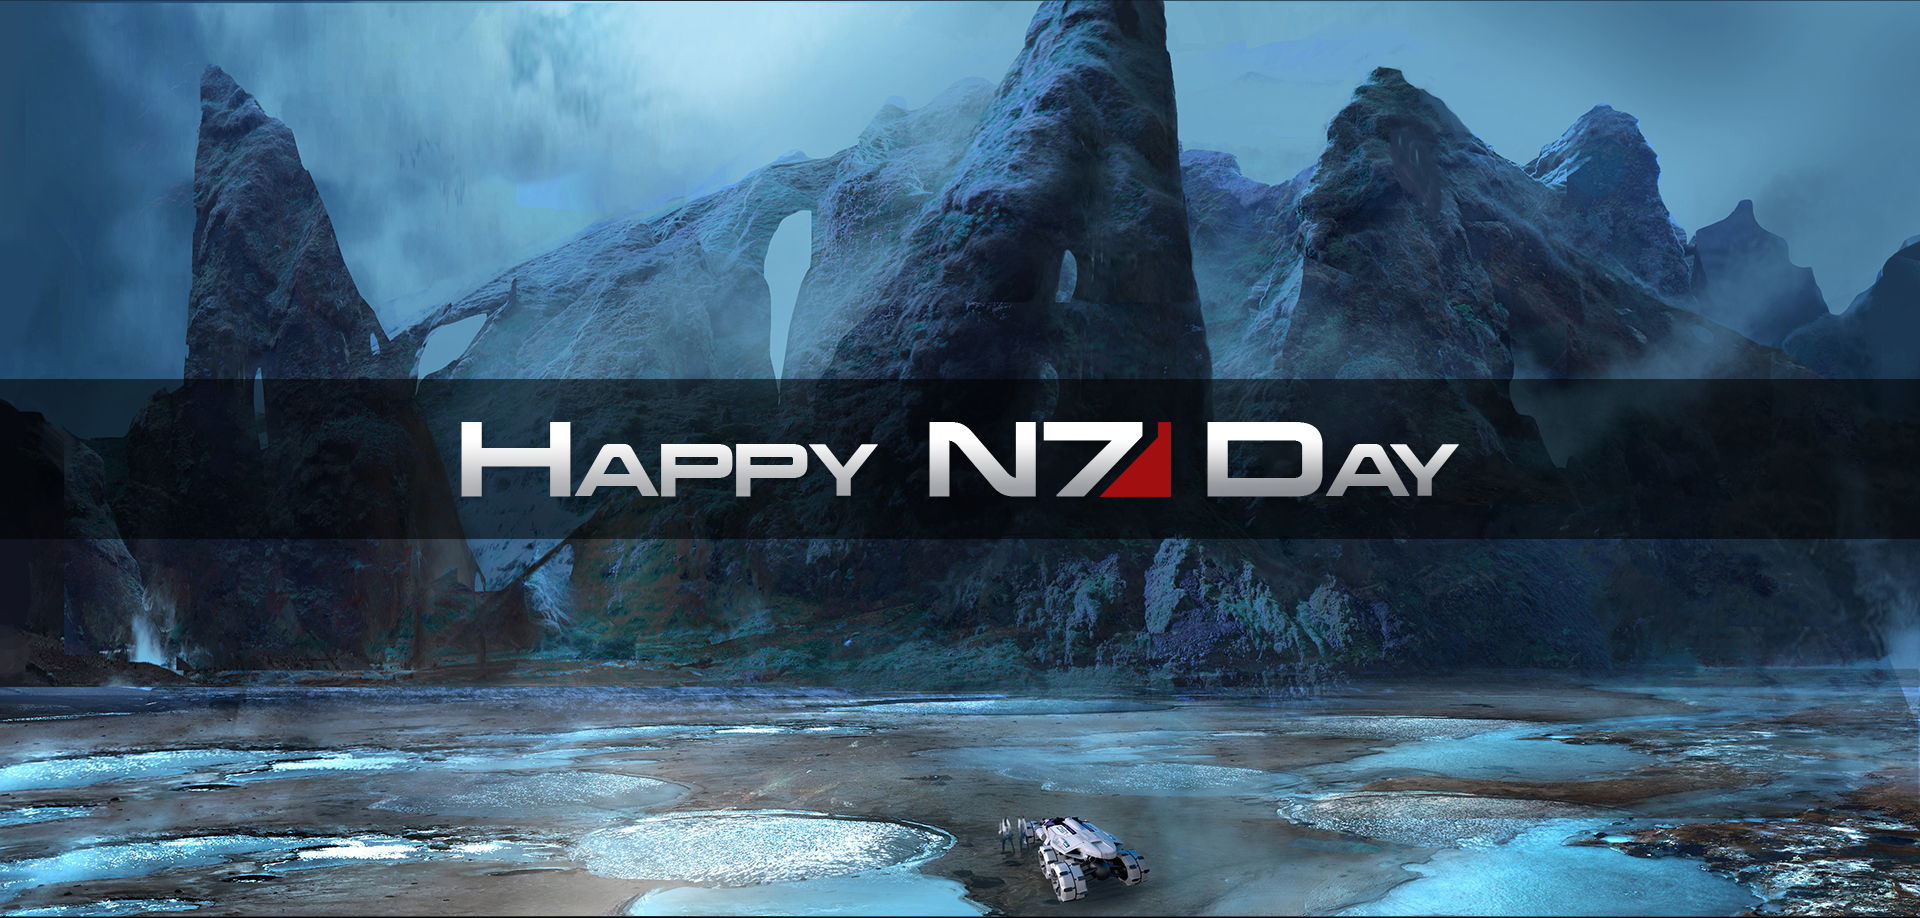 Happy N7 Day!